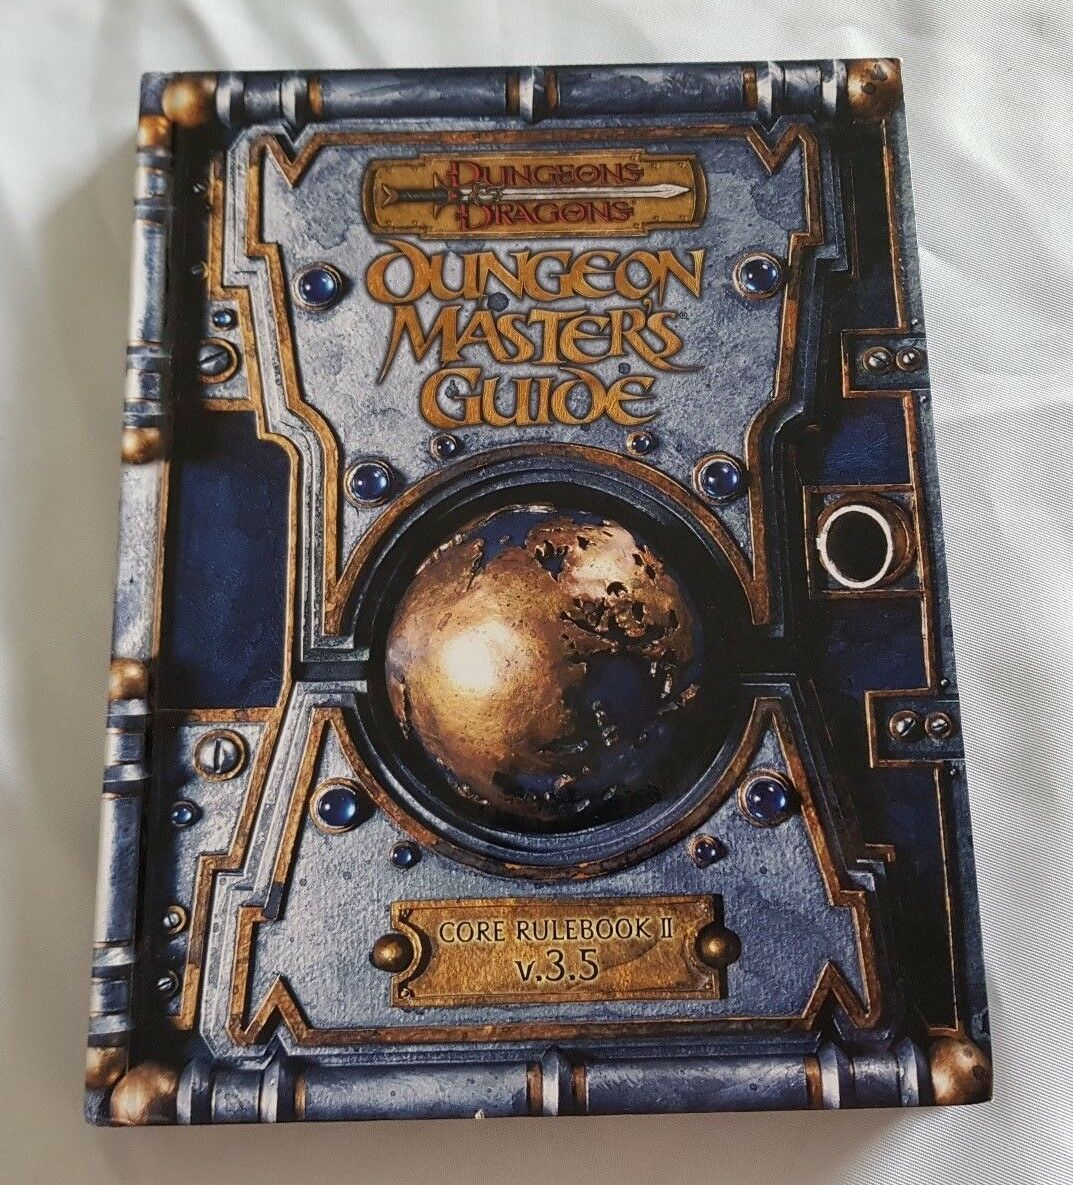 Dungeons & Dragons - Dungeon Master's Guide - Core Rulebook II v.3.4